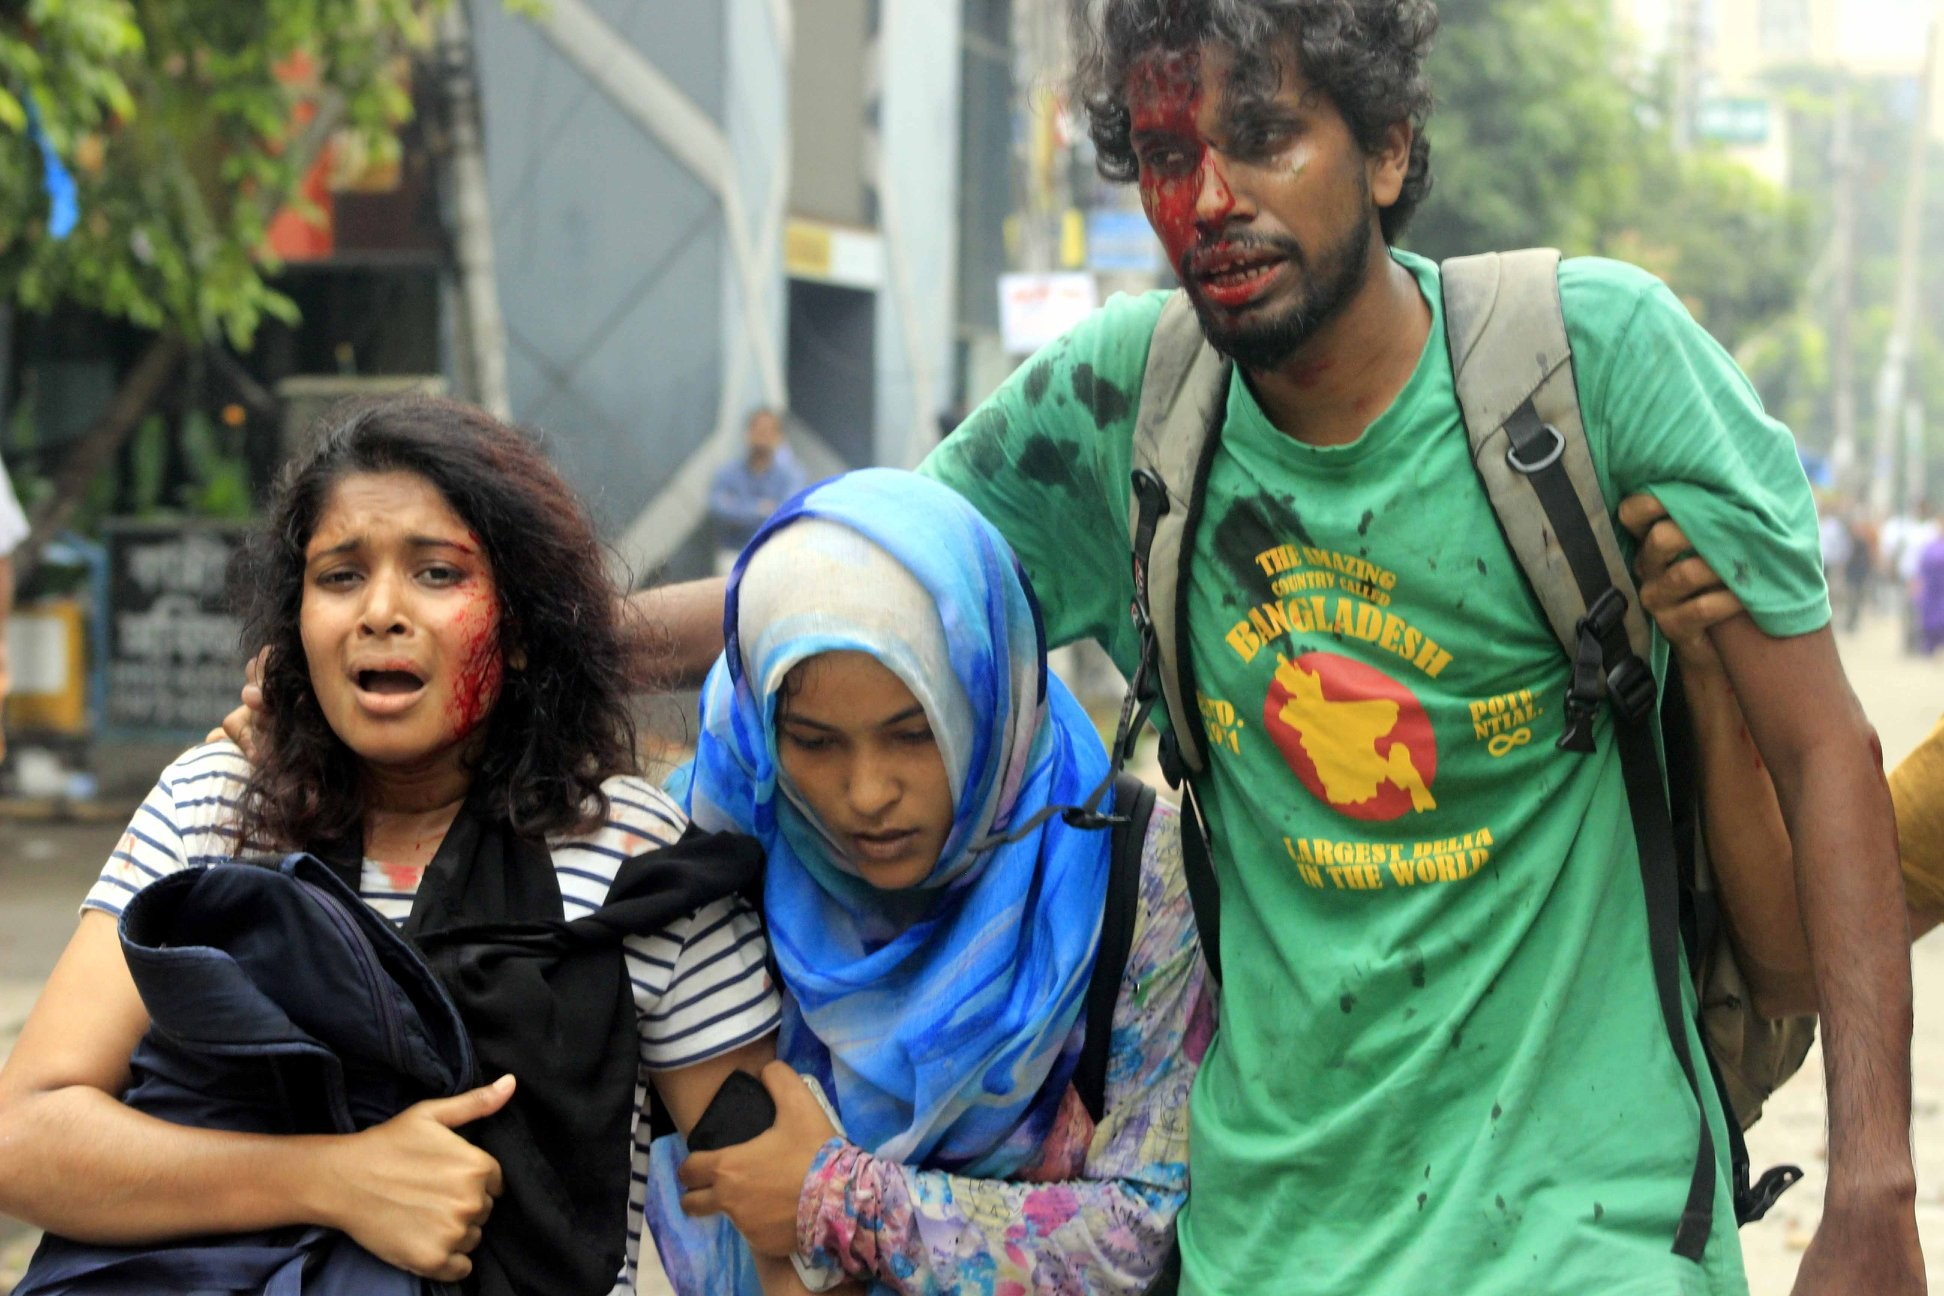 Bangladesh Dhaka Protests Government Attacks Unarmed Protestors